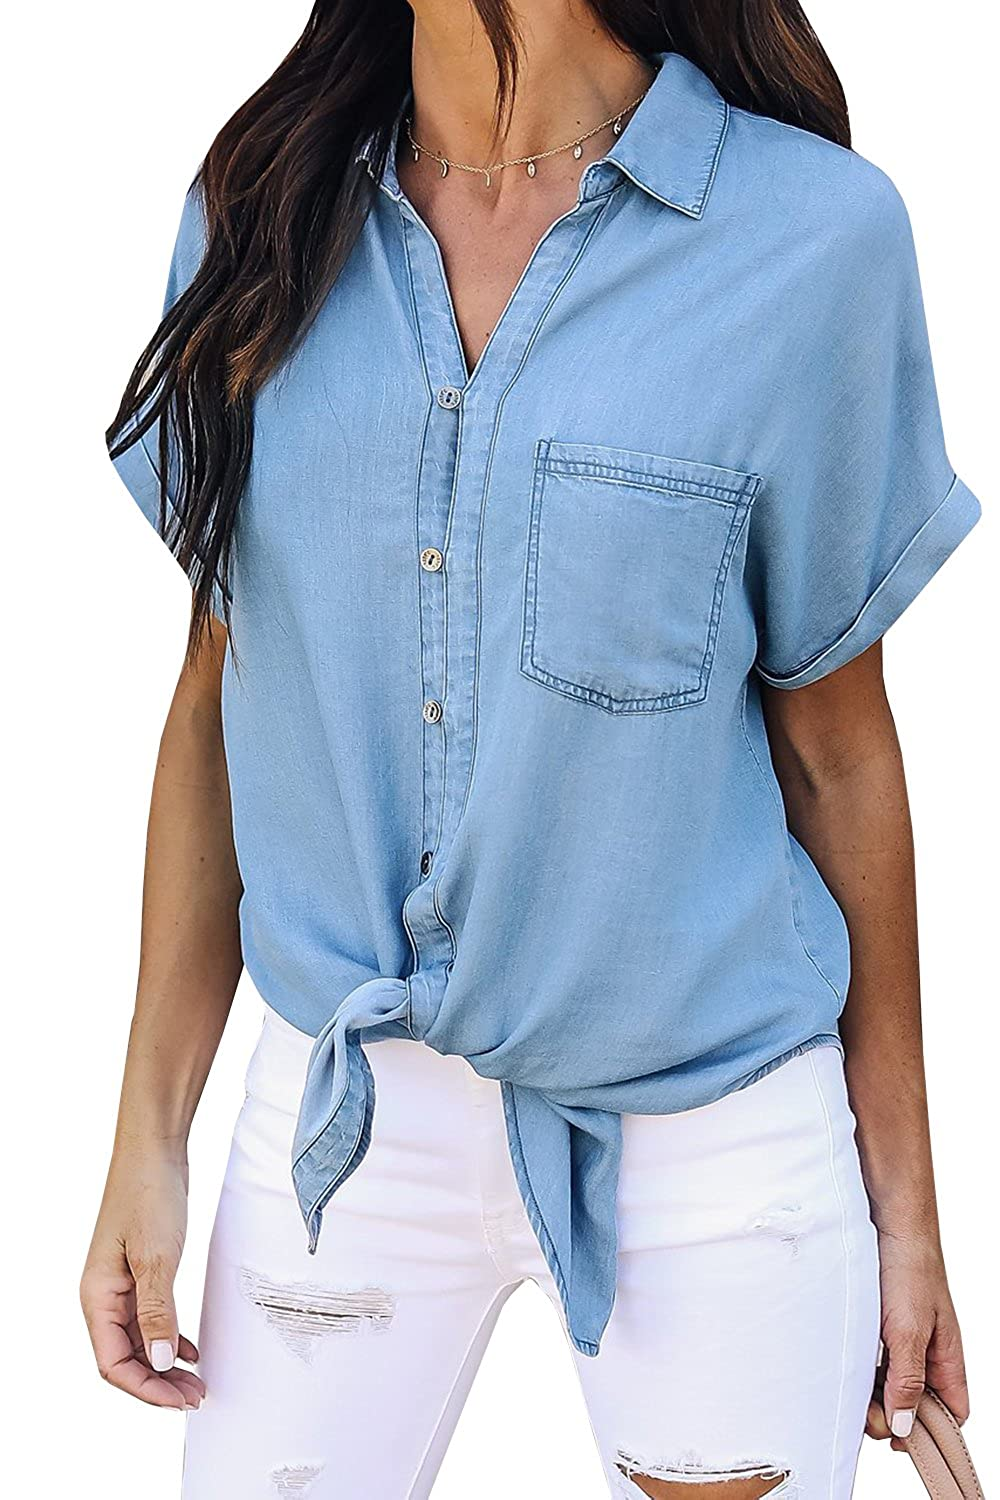 3c43a3465a6 PiePieBuy Women s Short Sleeve Denim Shirt Tops Button Closure Chambray  Shirts with Pockets at Amazon Women s Clothing store